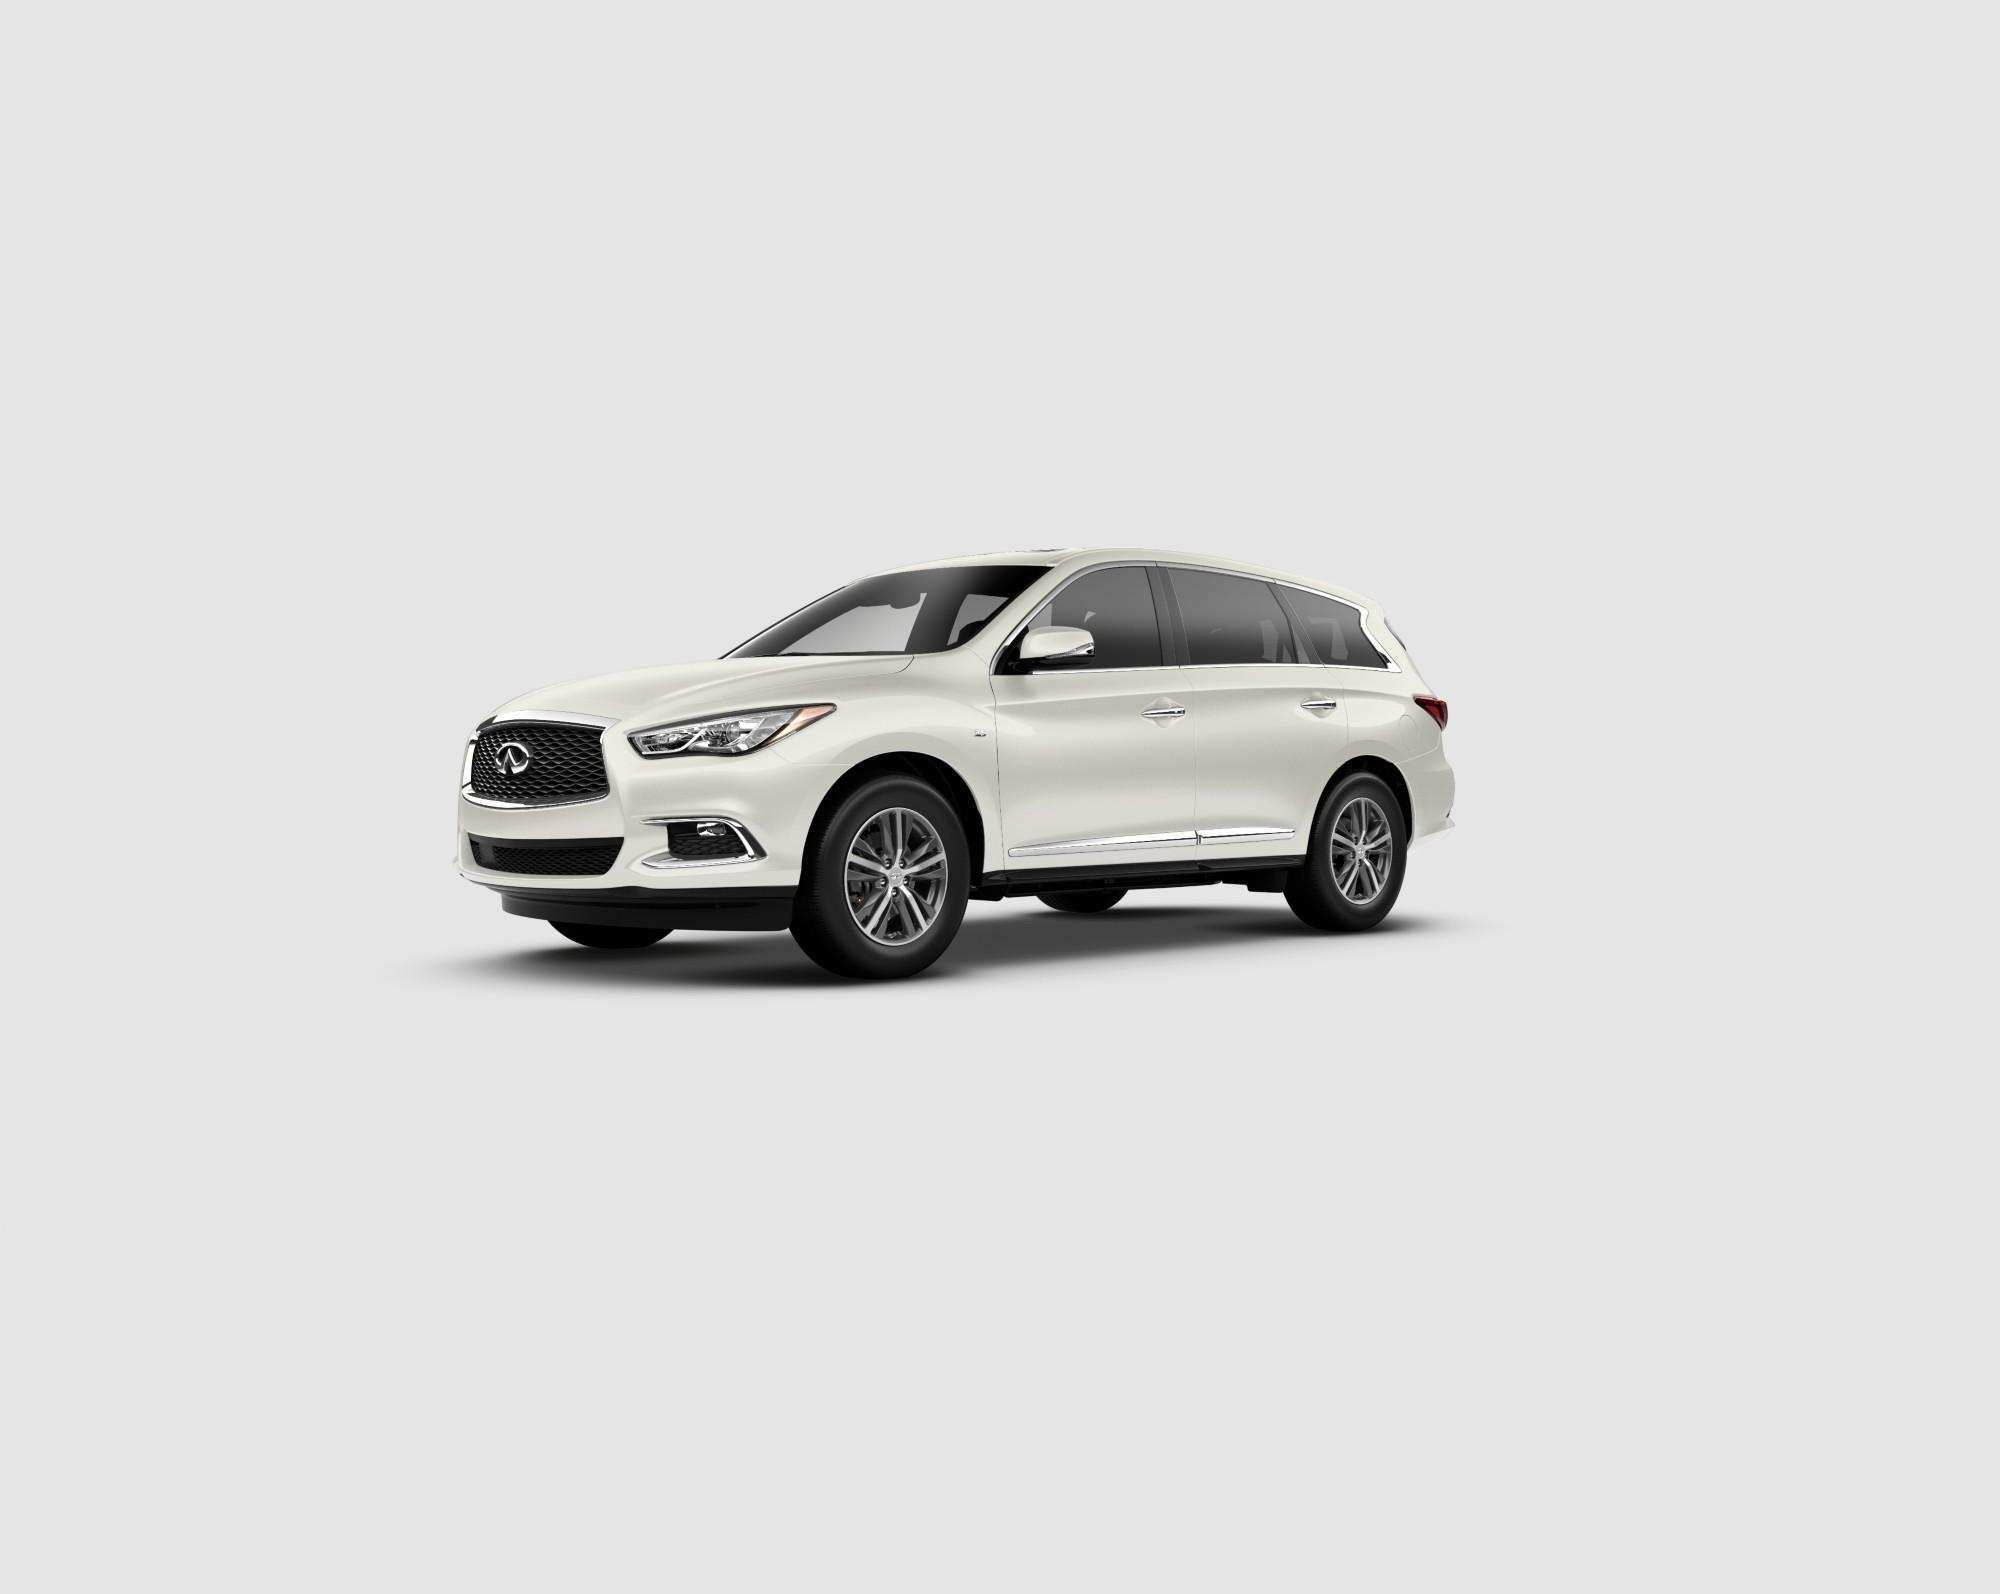 31 New Best Infiniti 2019 Qx60 First Drive Exterior for Best Infiniti 2019 Qx60 First Drive